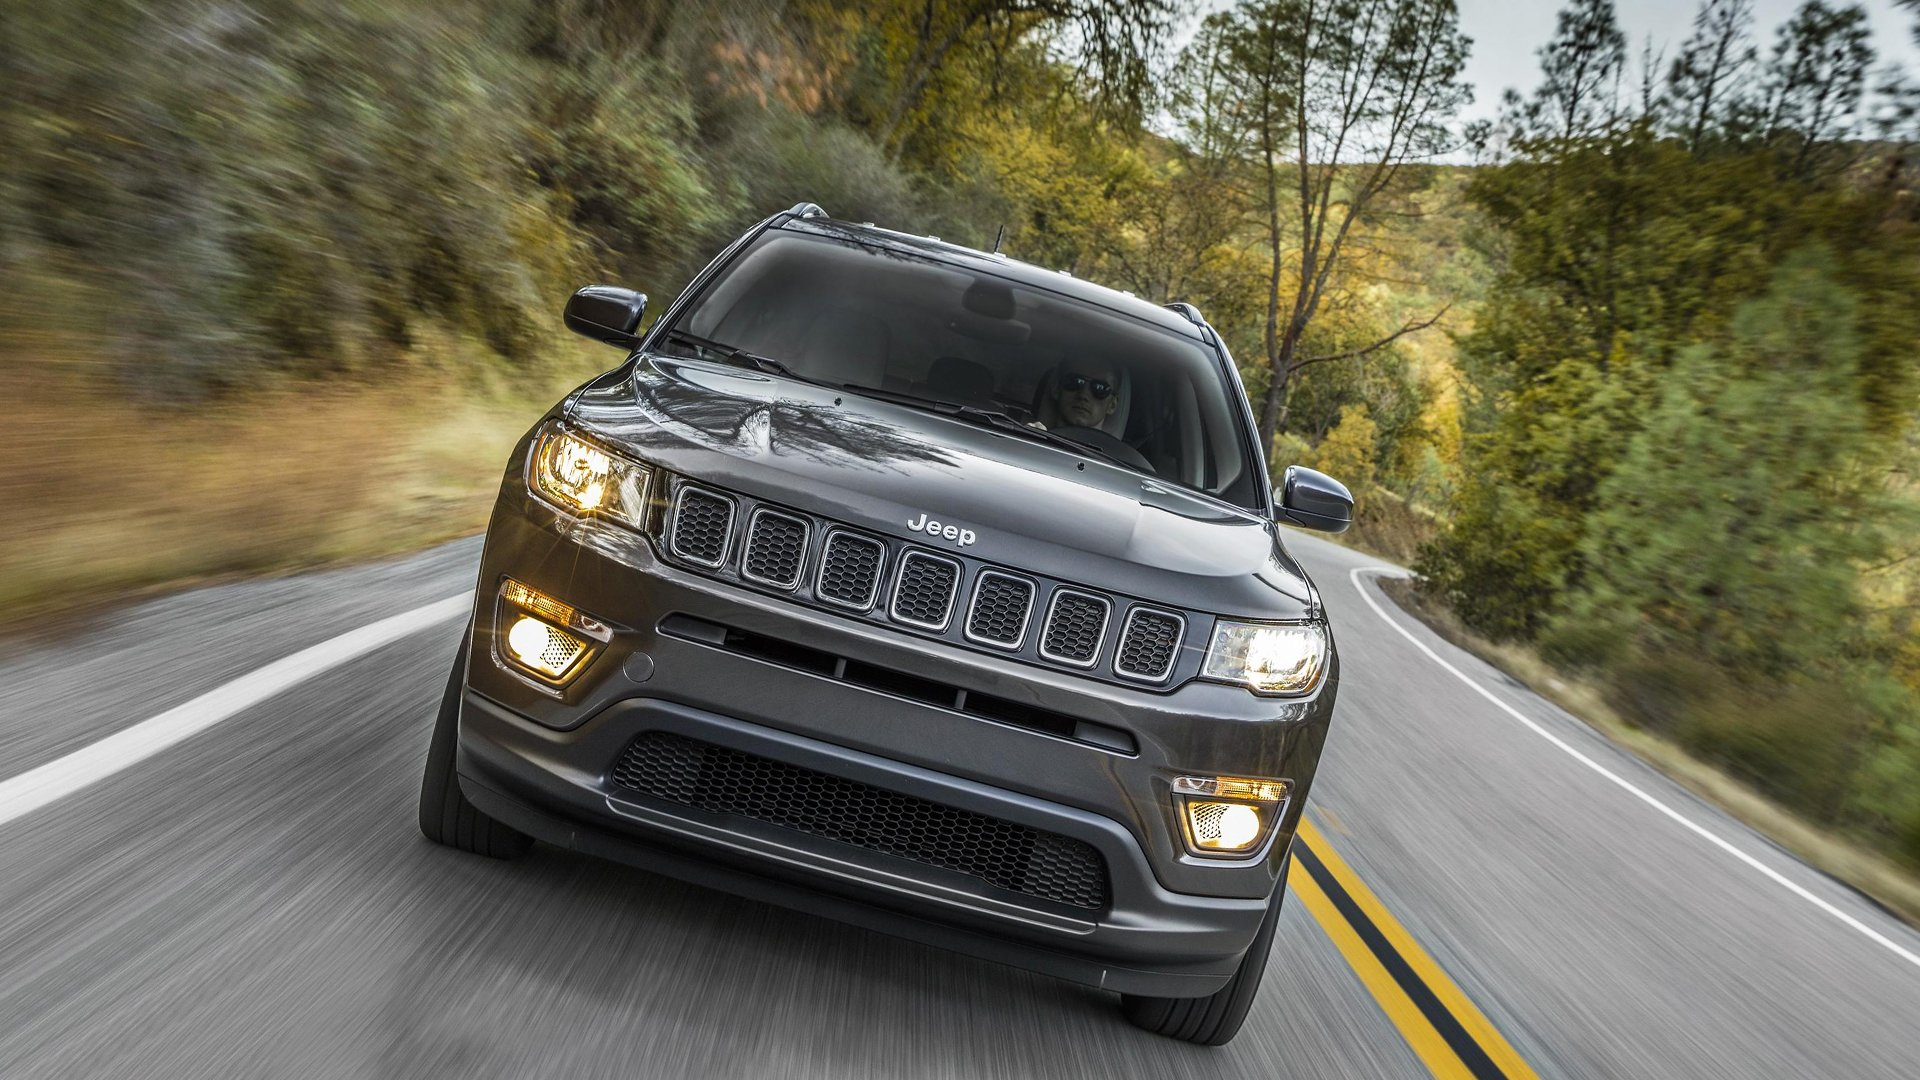 Jeep Compass 2018 USA Market HD